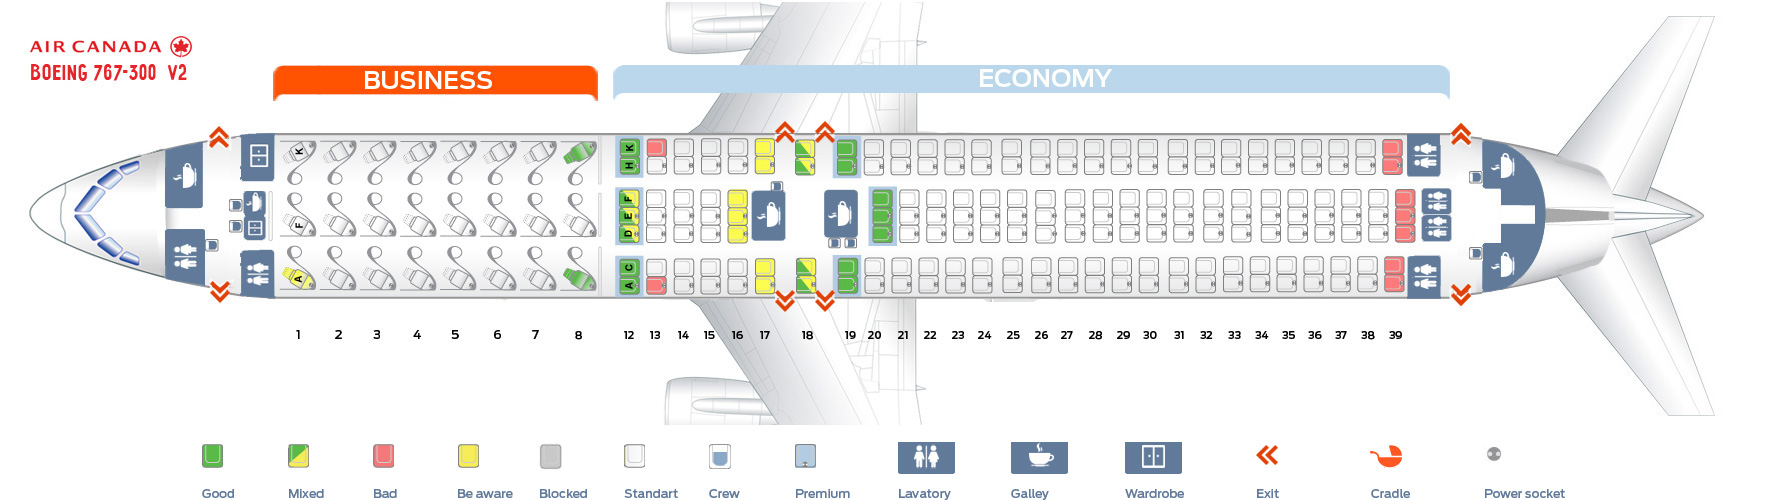 763 Air Canada Seat Map Seat map Boeing 767 300 Air Canada. Best seats in plane